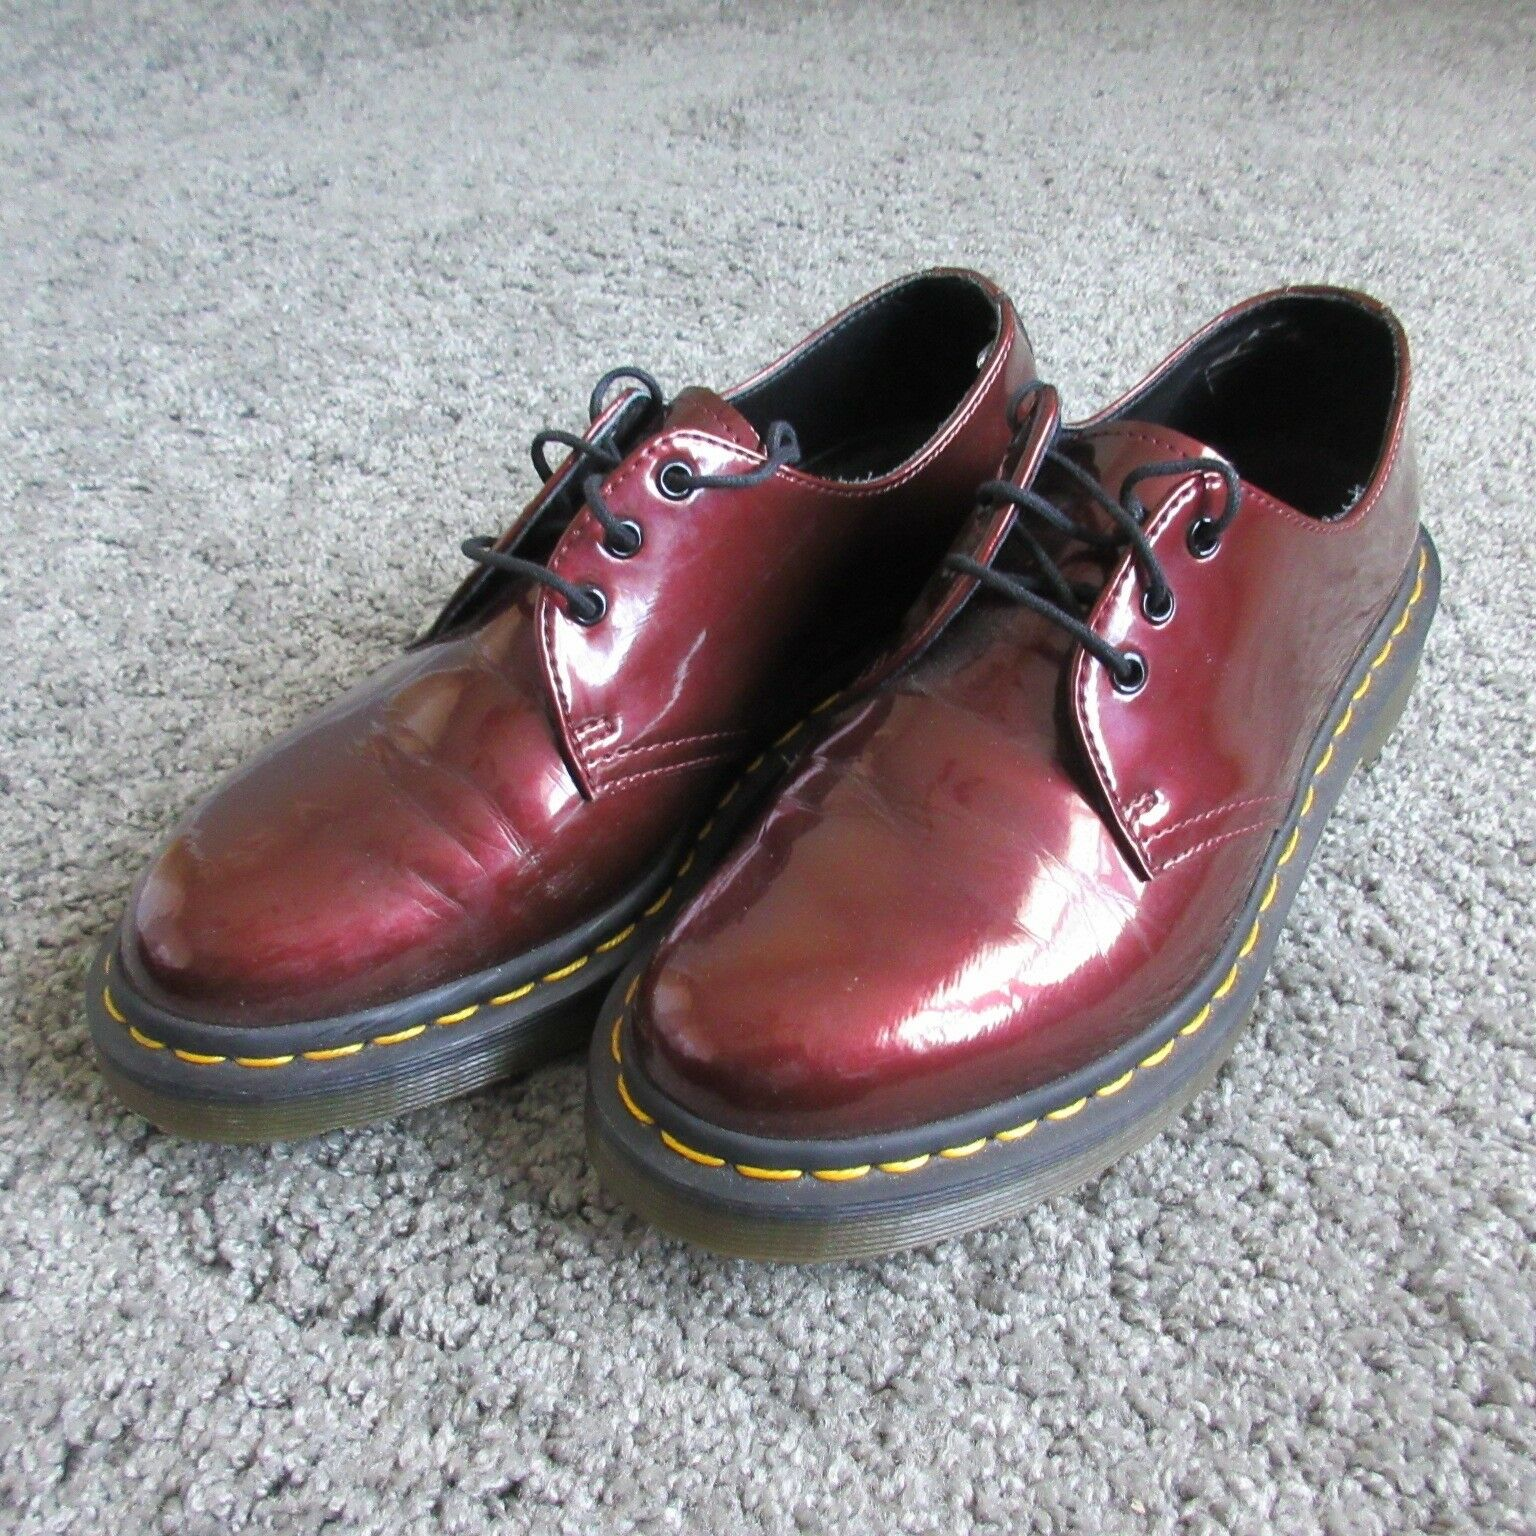 DR.MARTENS 10084 Uomo 7 MAROON RED PATENT LEATHER SHINY LOW BOOT OXFORD RARE